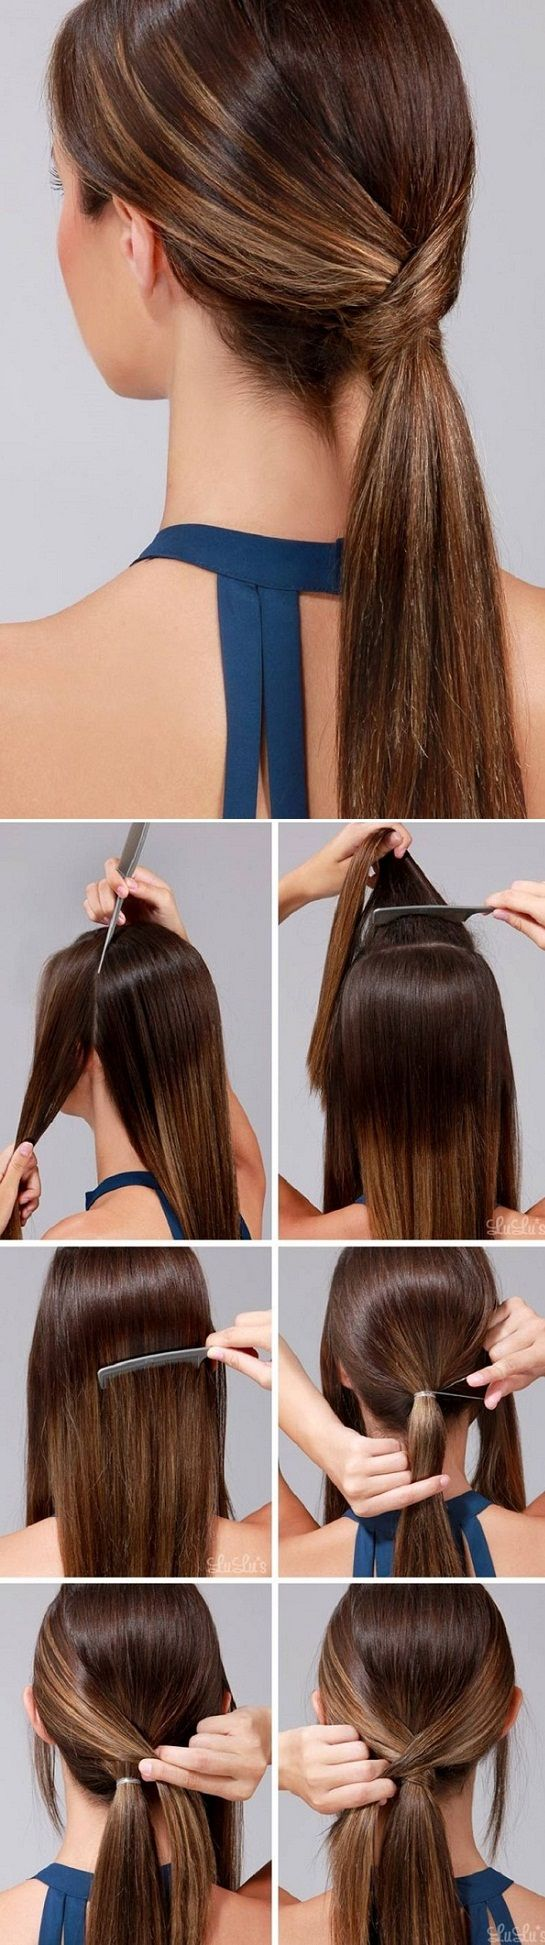 RUNWAY LOW PONYTAIL HAIRSTYLE